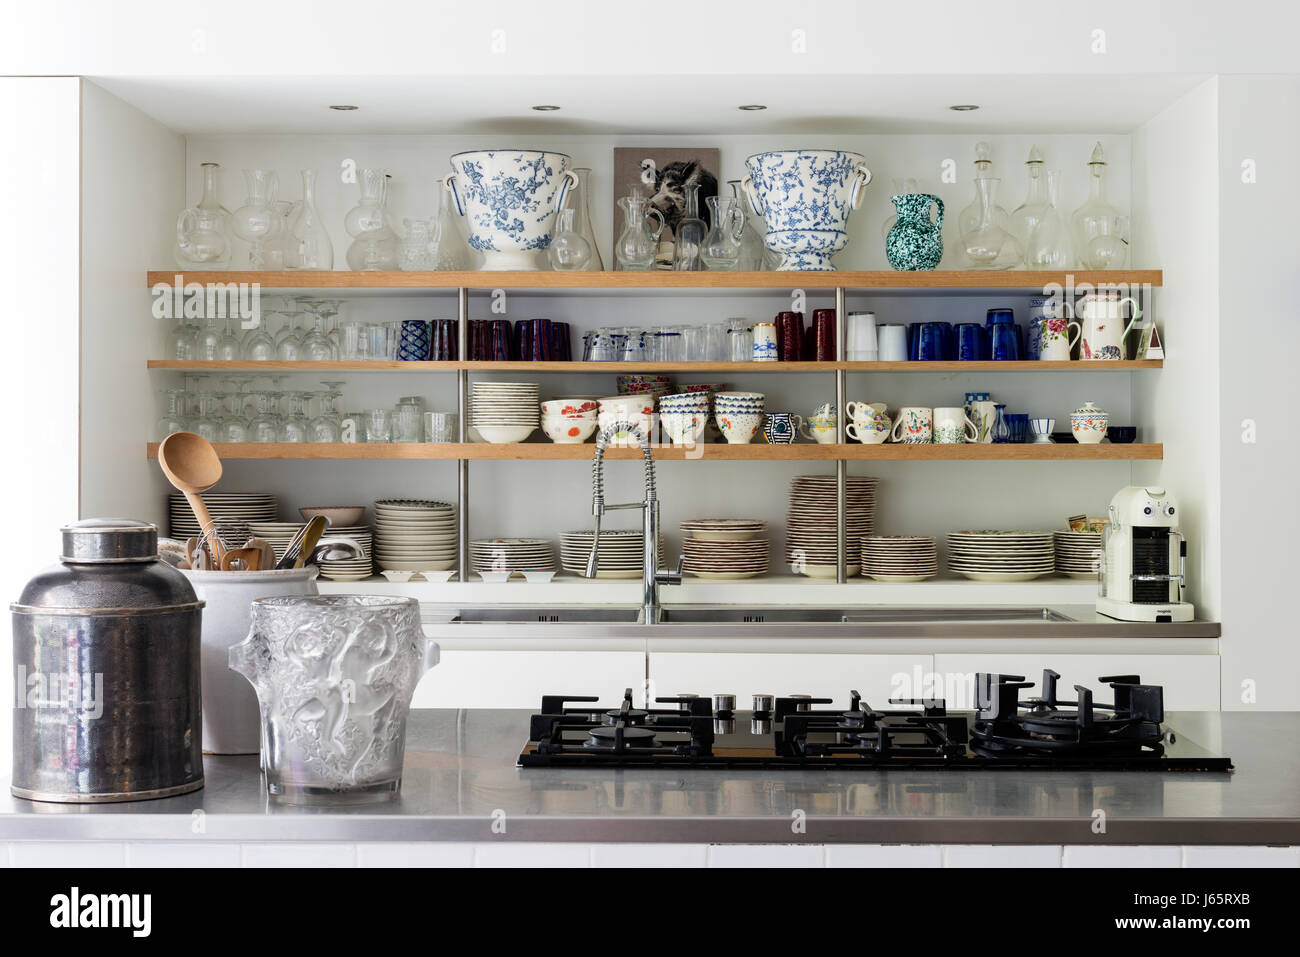 Crockery and glassware storage in kitchen of Brussels atelier with five ring hob - Stock Image